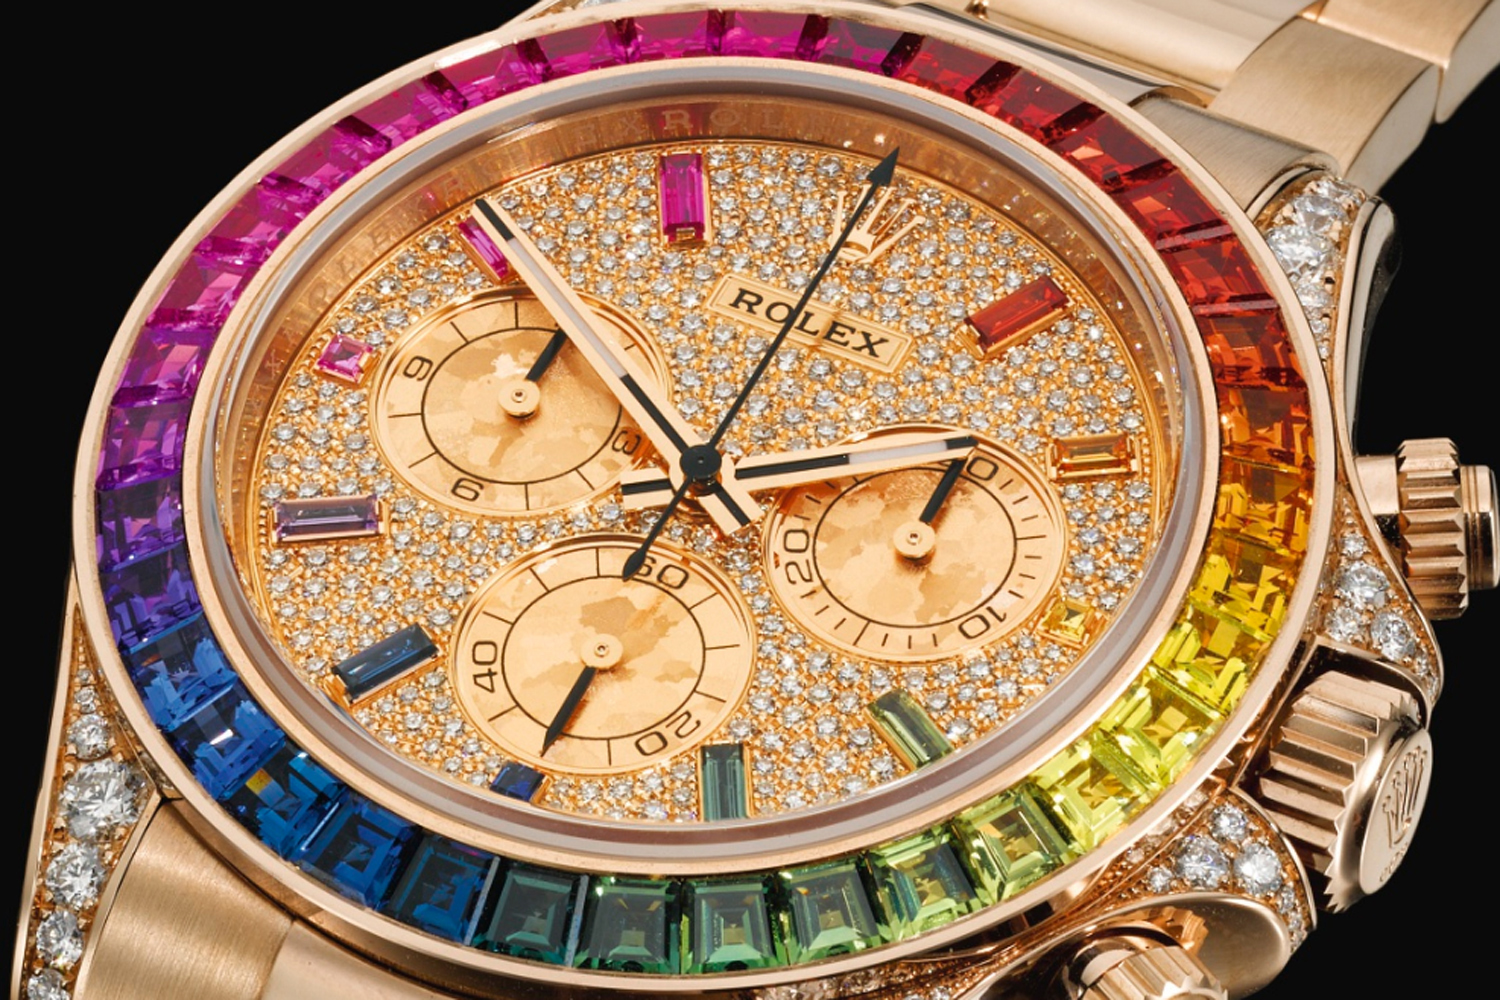 2018 Rolex Daytona rises in price by over $200,000 in less